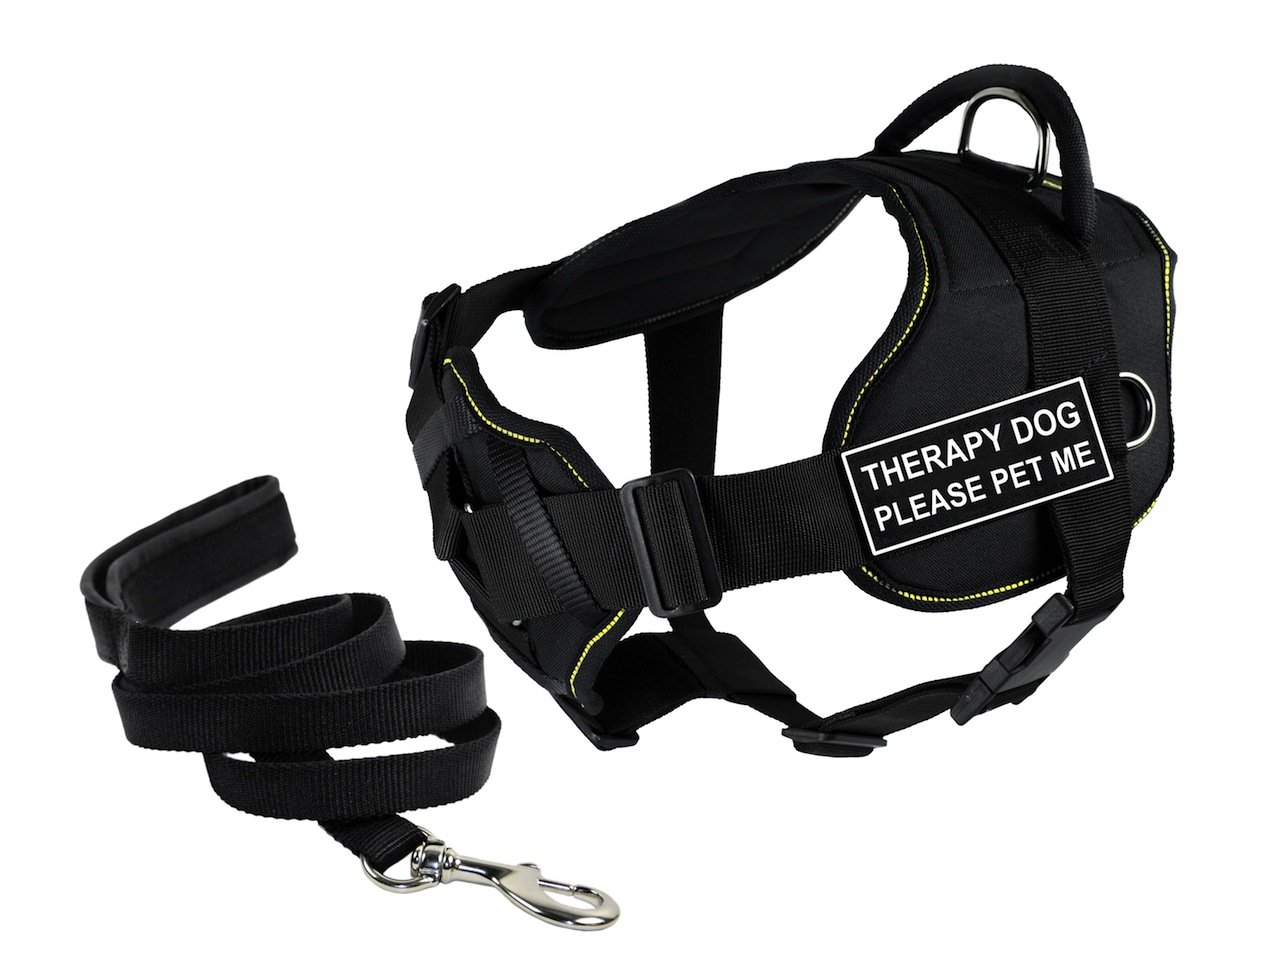 Dean & Tyler's DT Fun Chest Support THERAPY DOG PLEASE PET ME Harness, Small, with 6 ft Padded Puppy Leash.